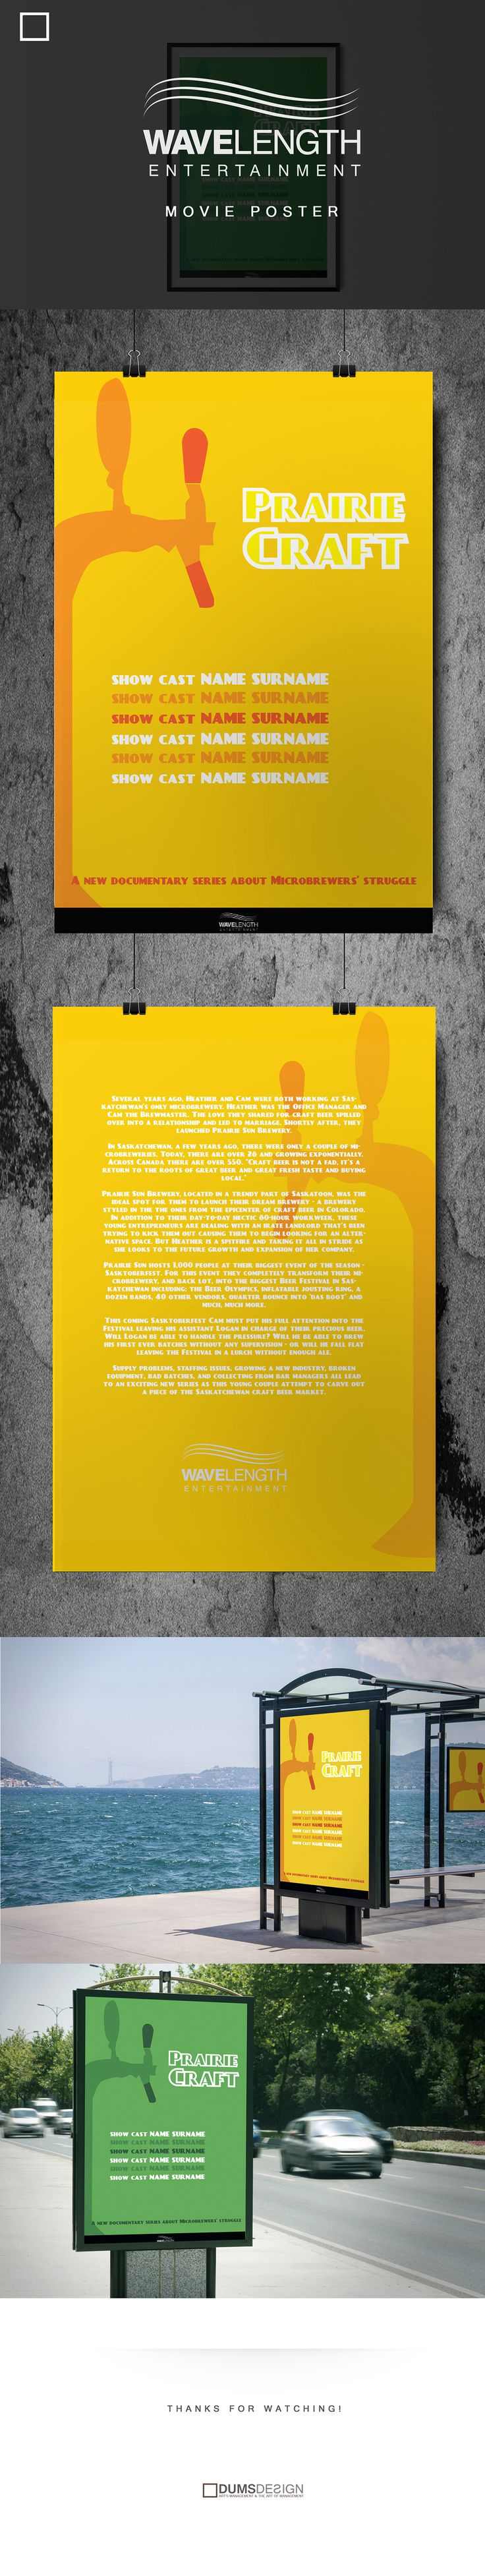 Wavelenght Entertainment - Poster Design on Behance